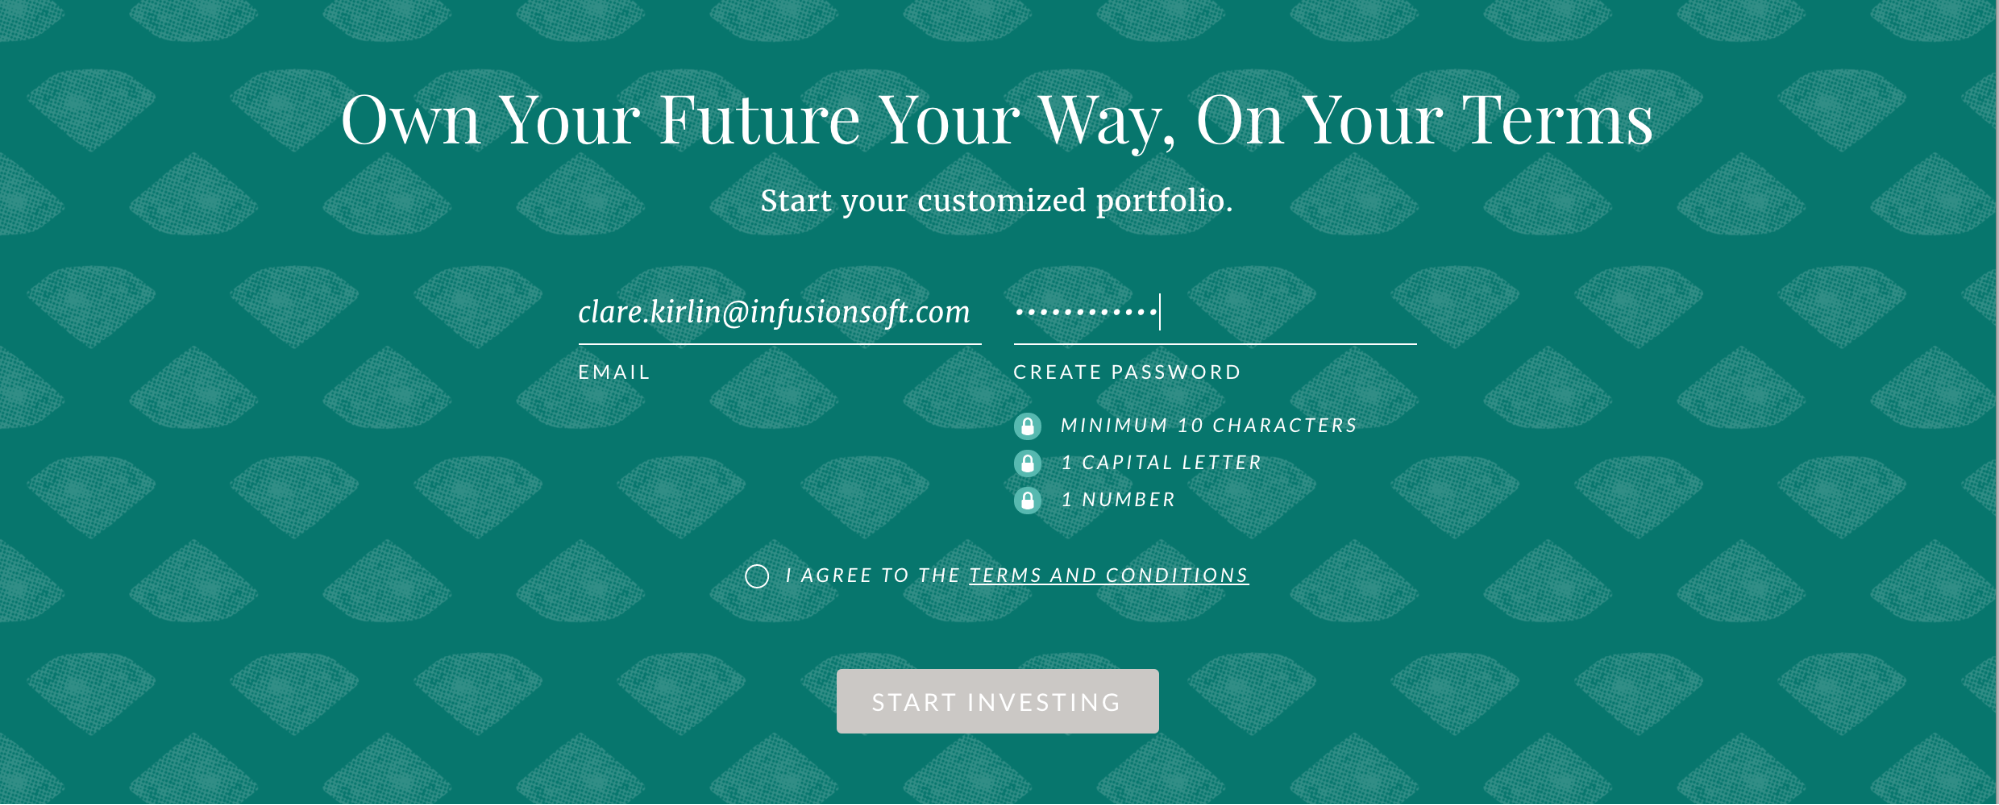 Ellevest landing page example.png